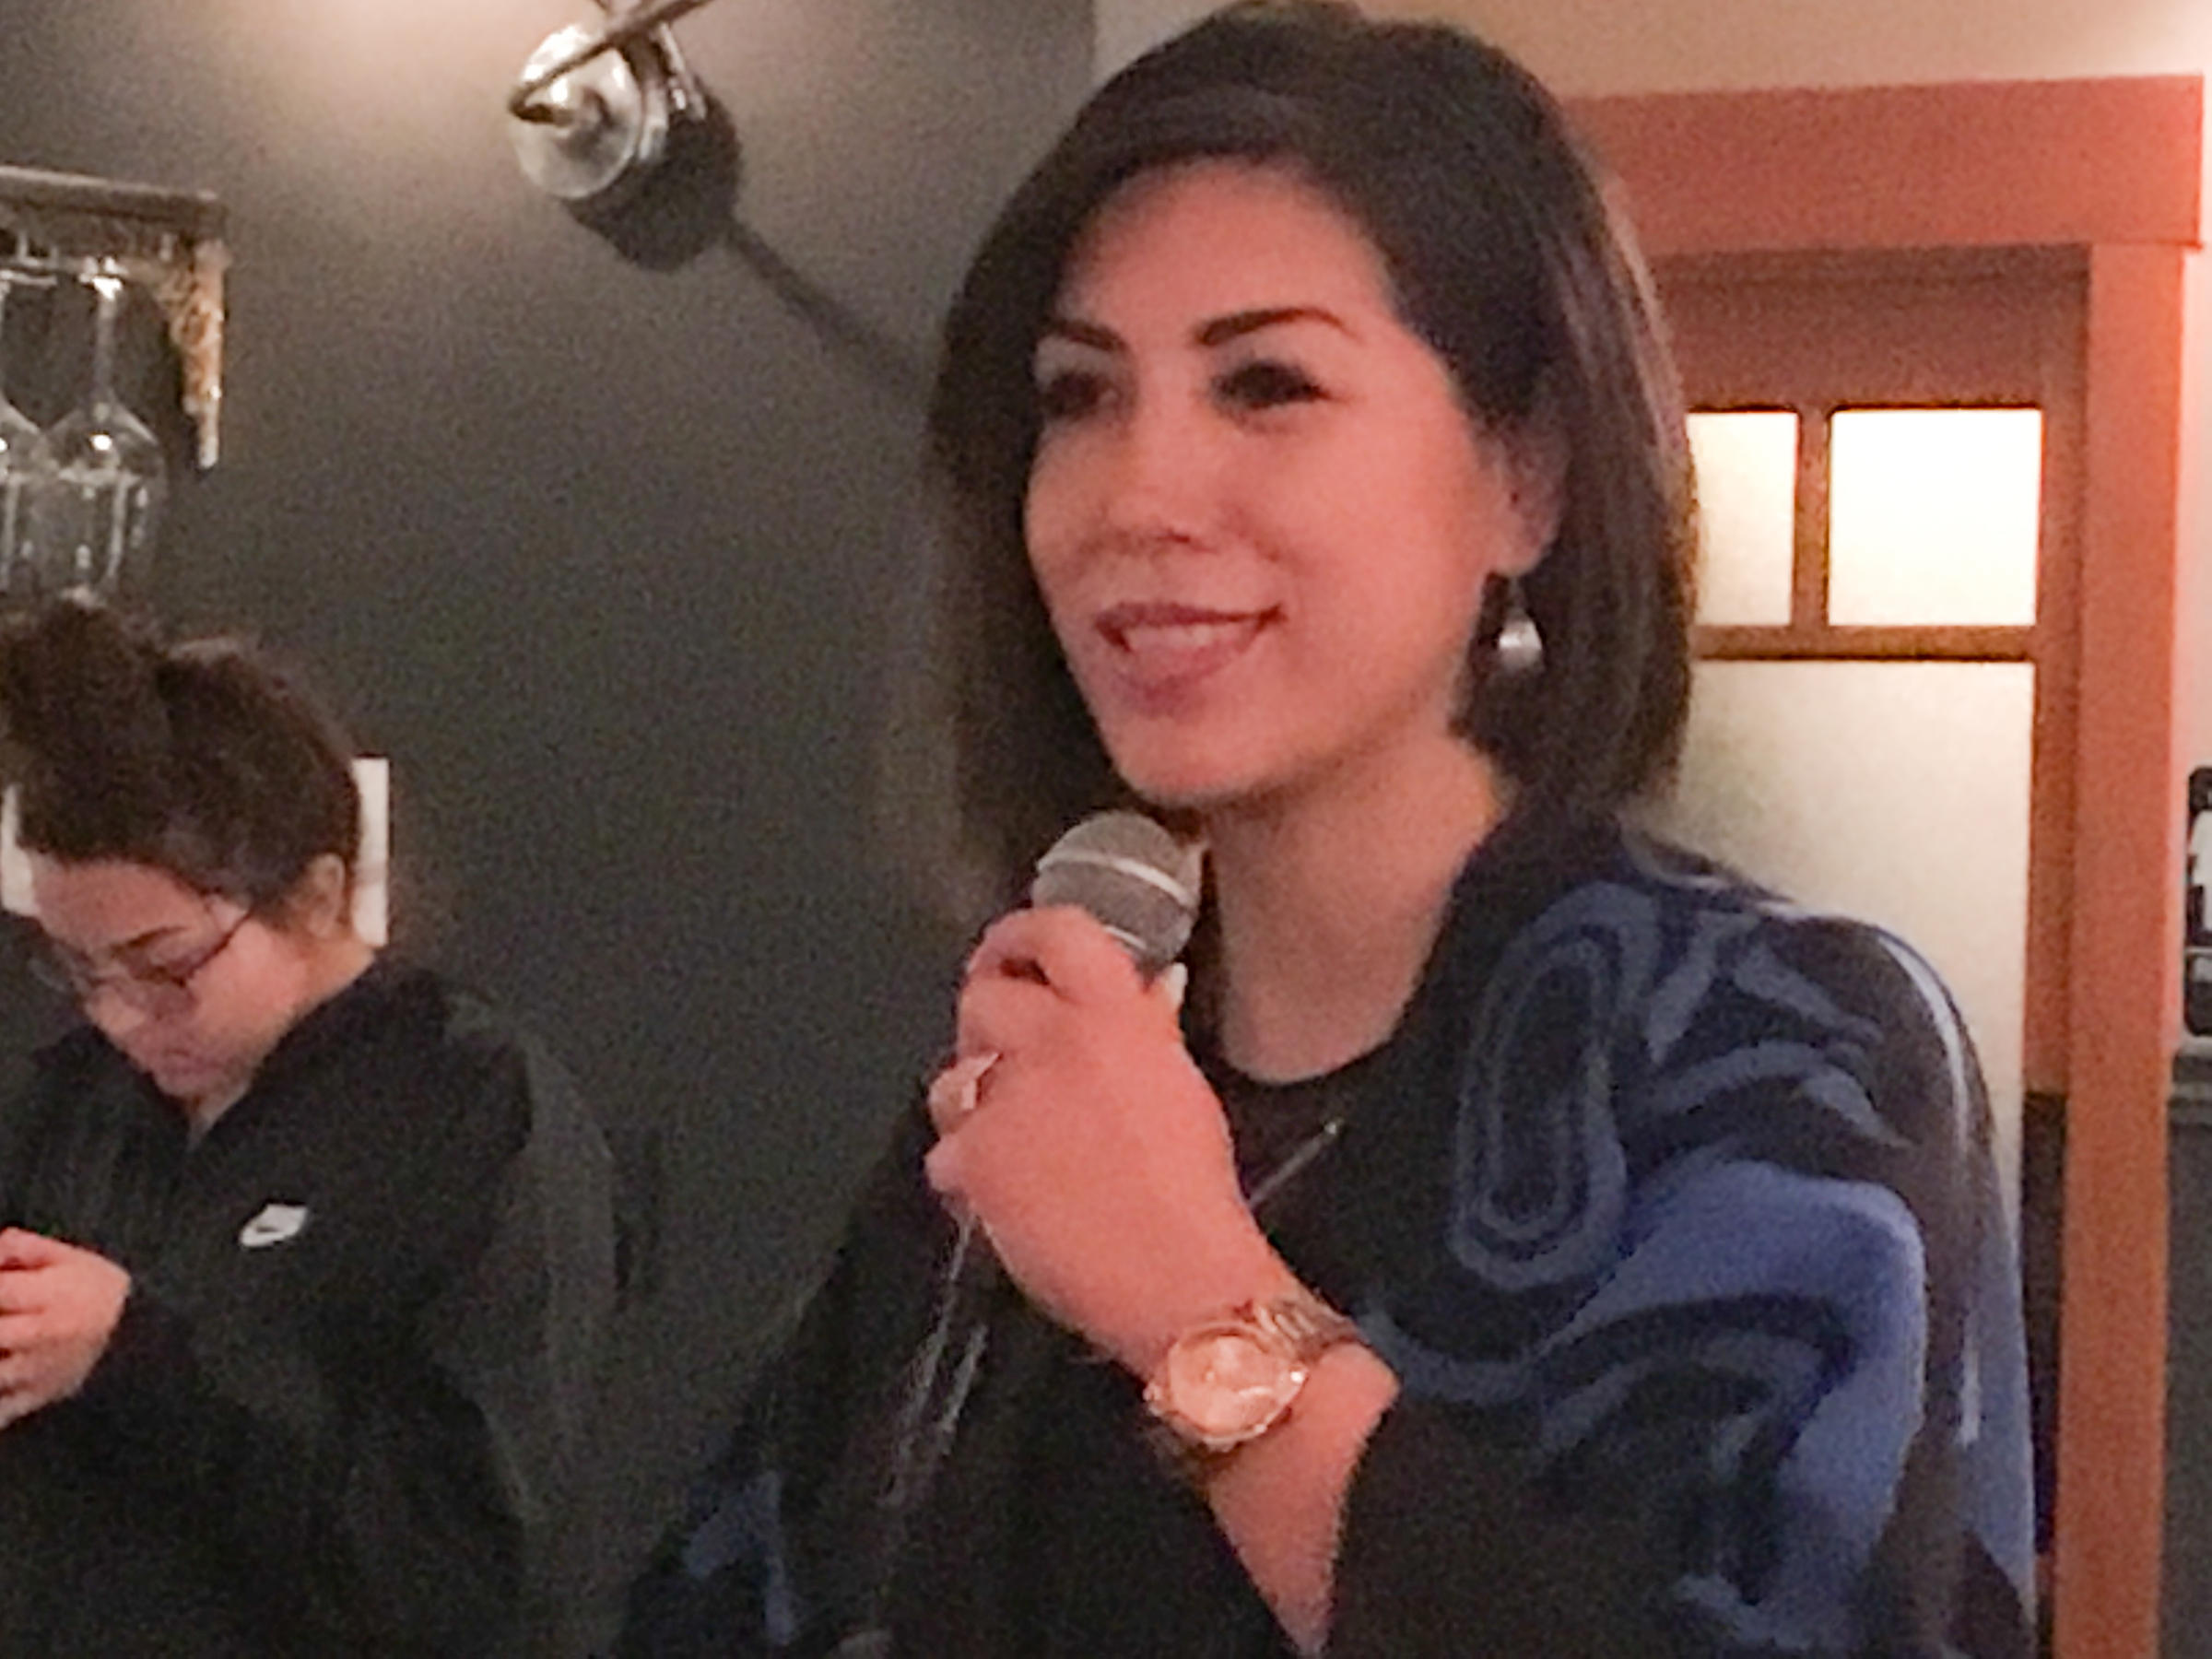 Rep. Paulette Jordan steps down to focus on run for governor